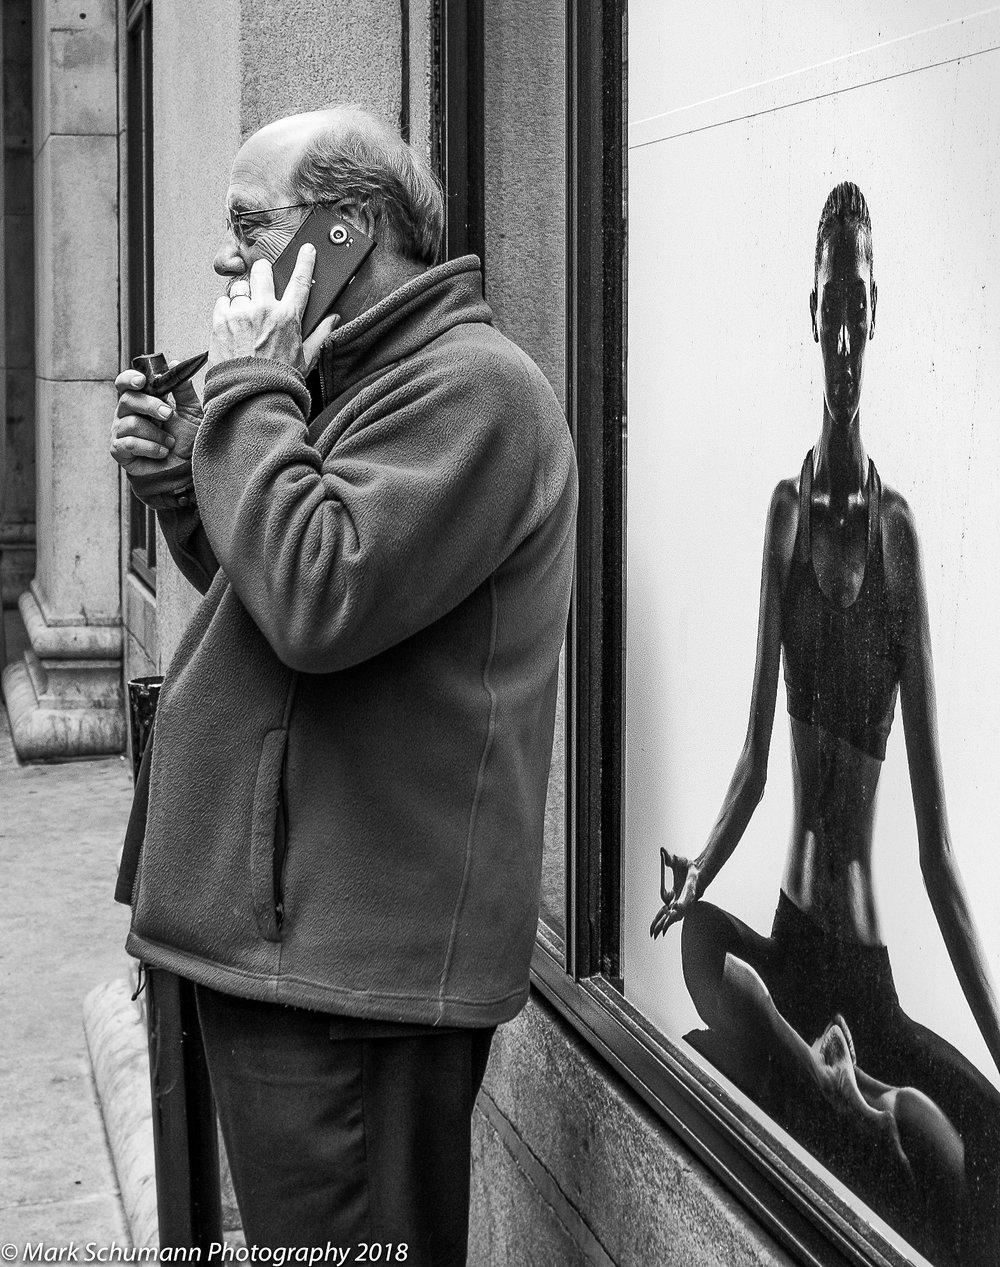 Street Photography_Chicago_Pipe Smoker_113018.jpg